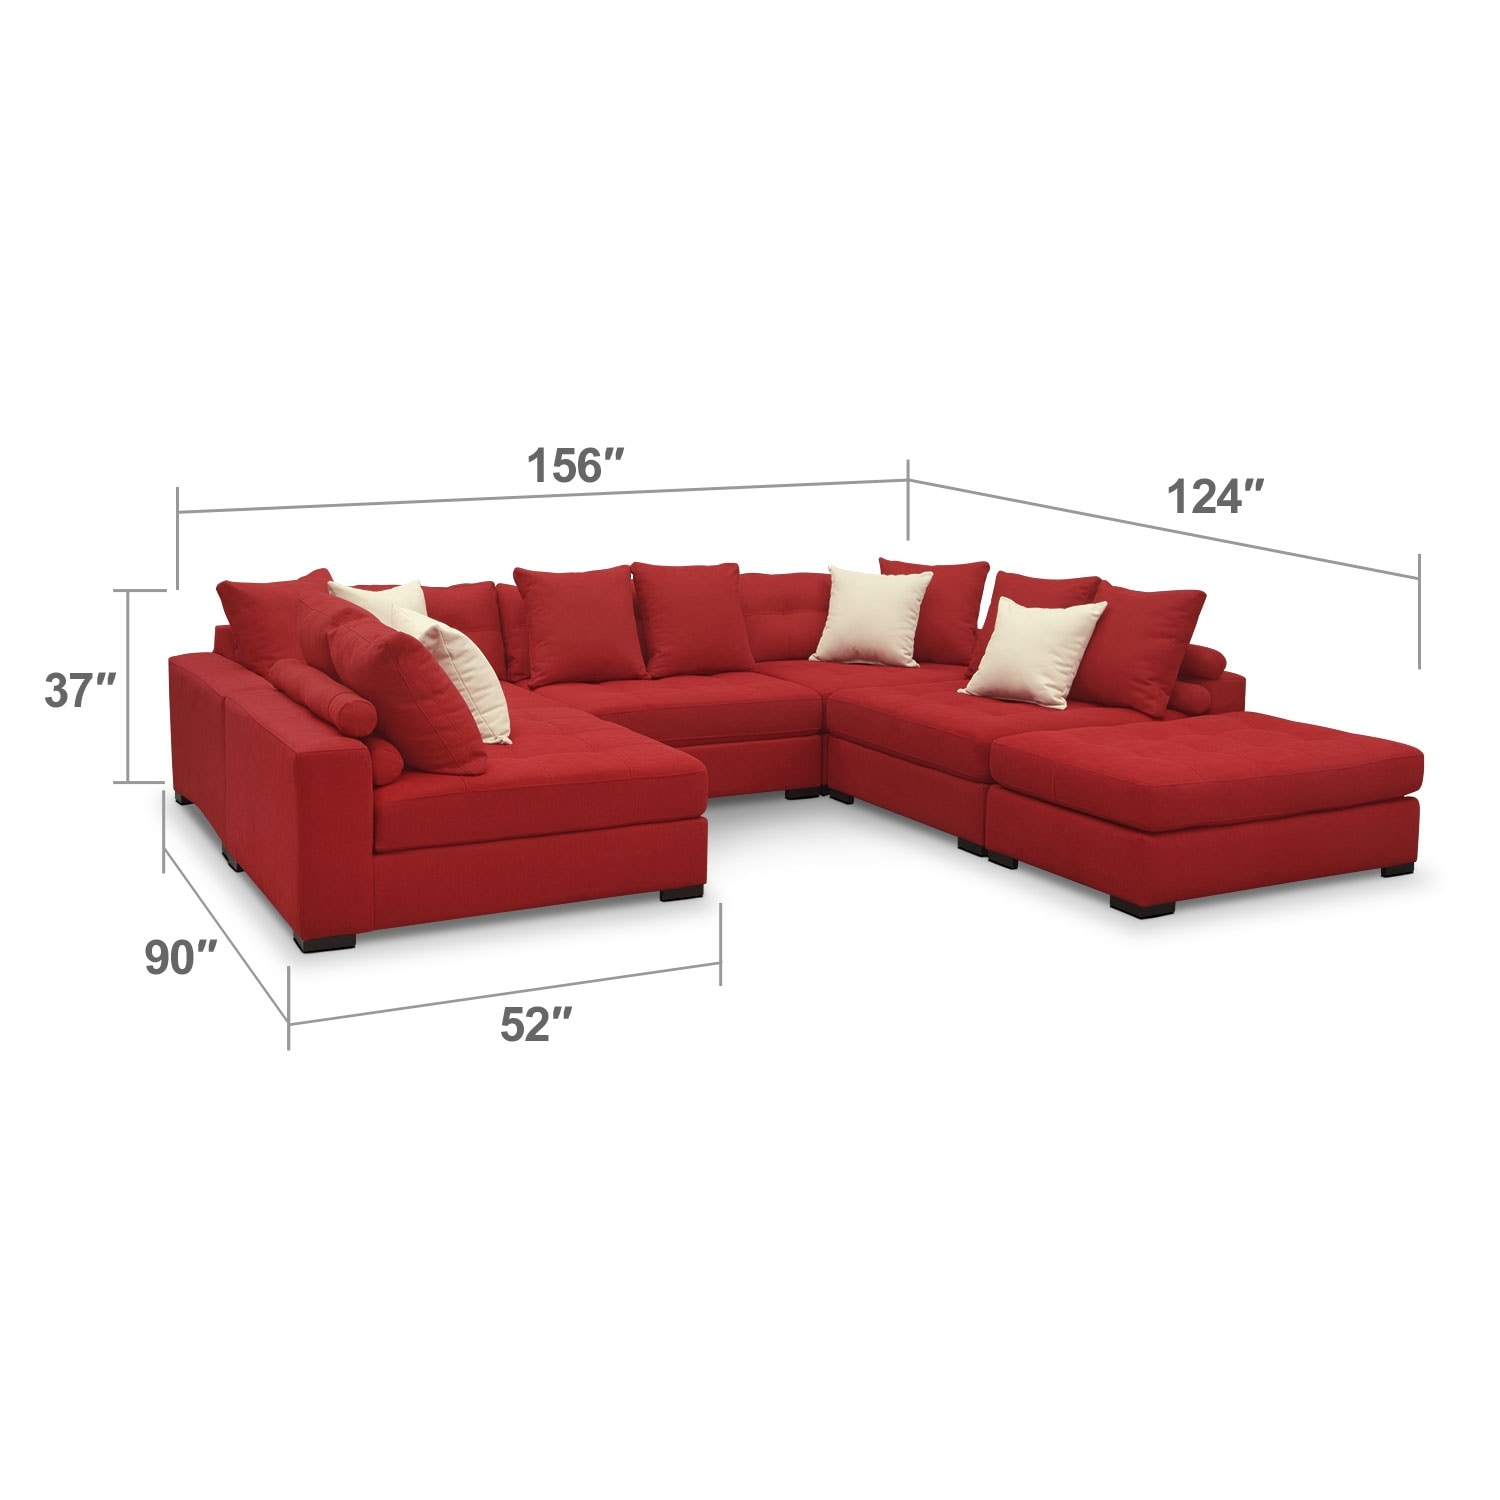 Living Room Furniture - Venti Red 6 Pc. Sectional